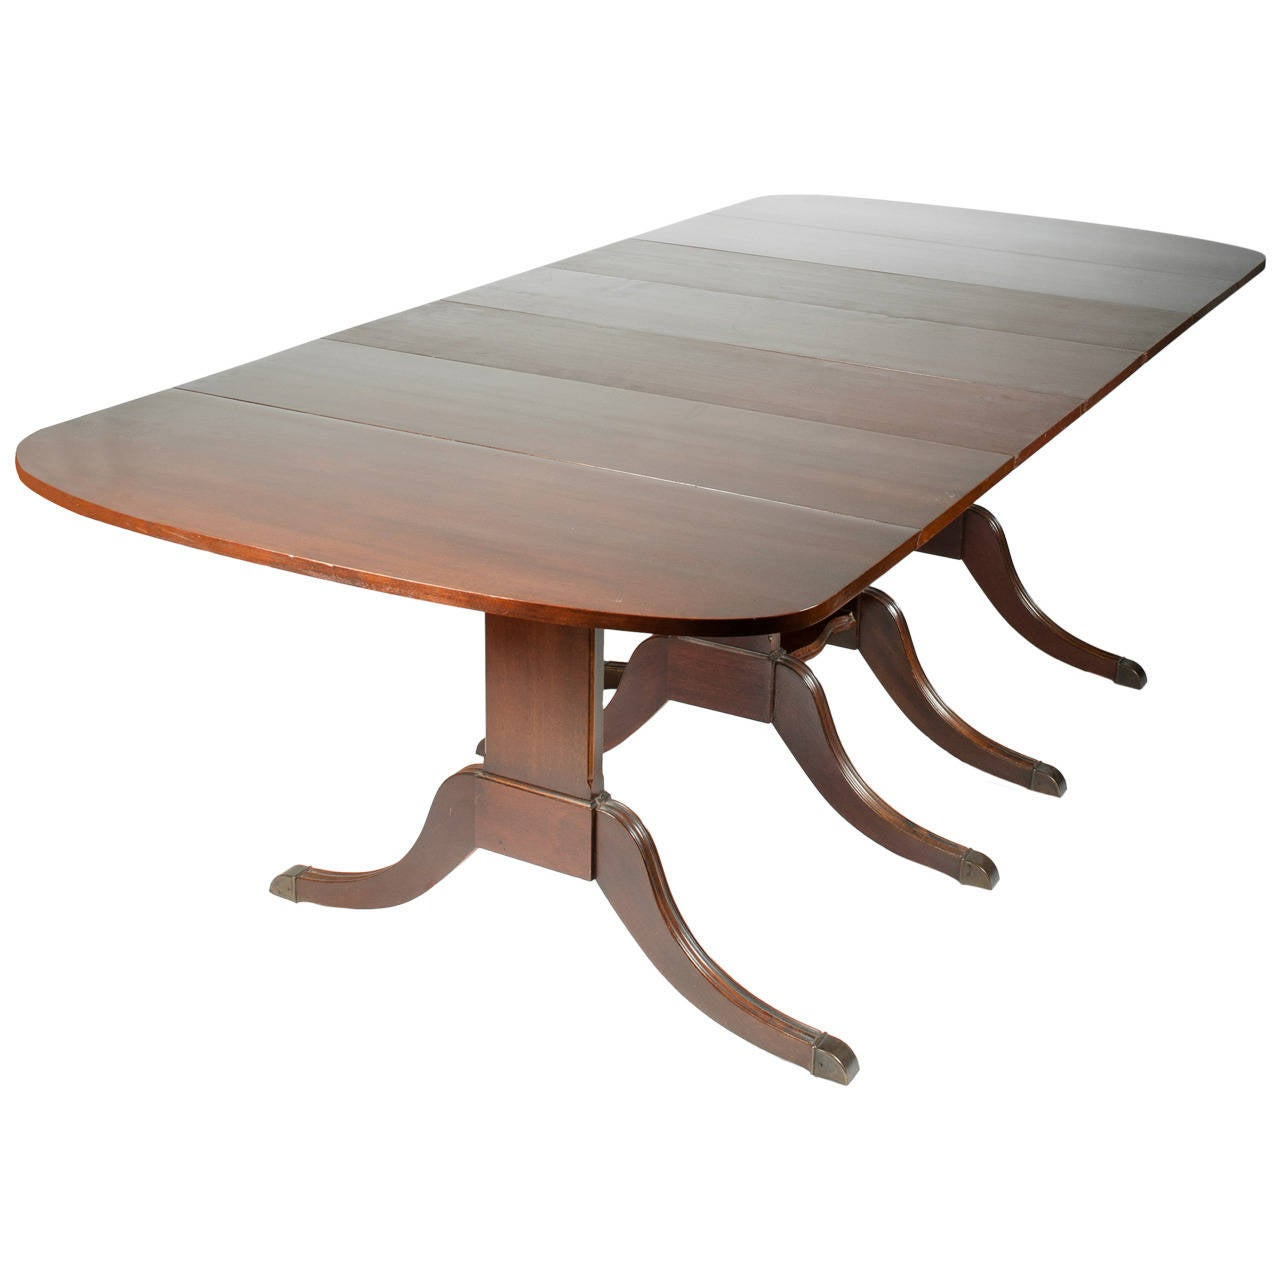 Duncan phyfe style drop leaf extension table for sale at for Dining table with leaf insert